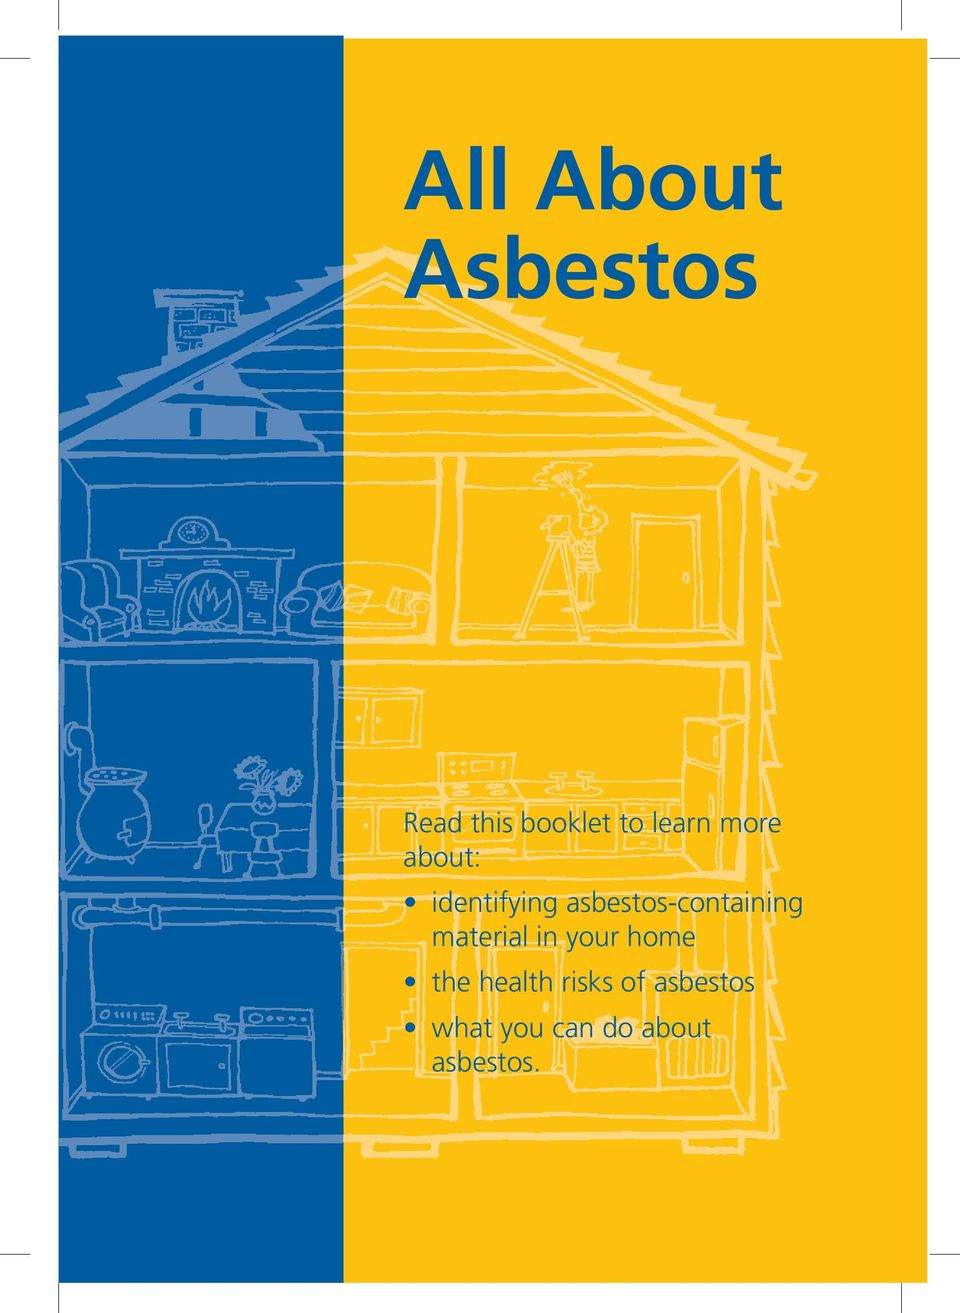 asbestos-containing material in your home